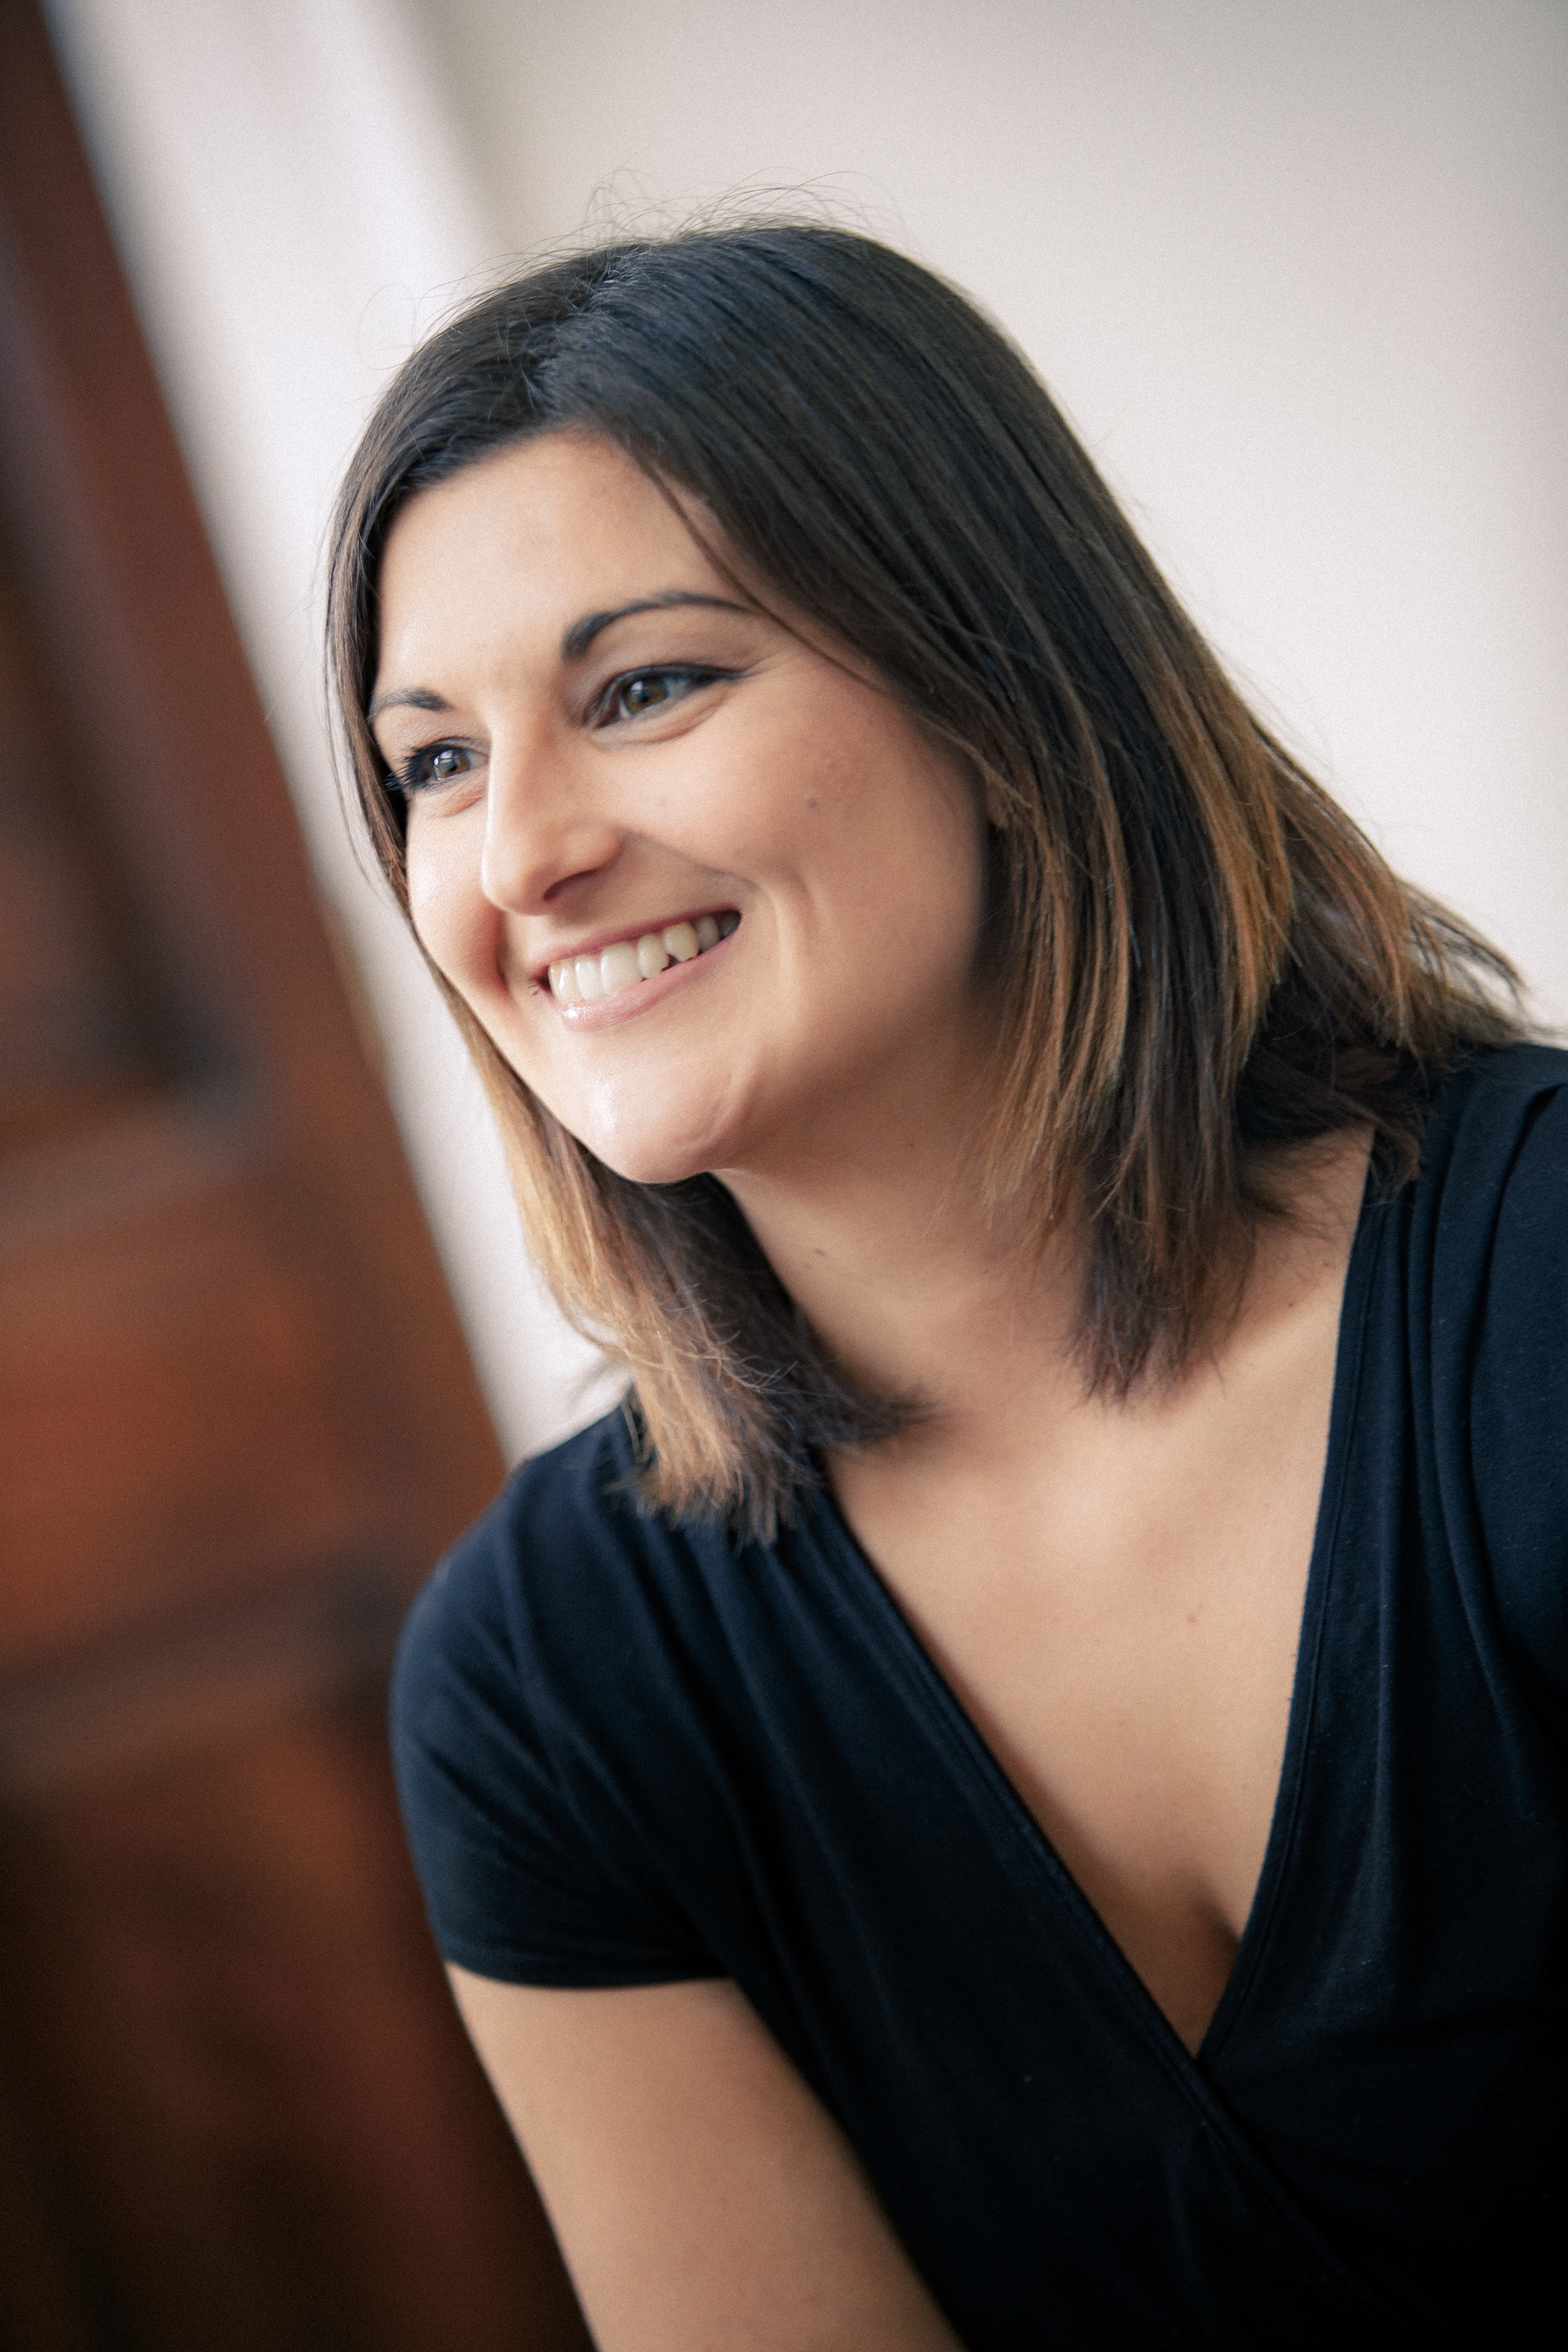 Our Danae - Internal Comms Consultant